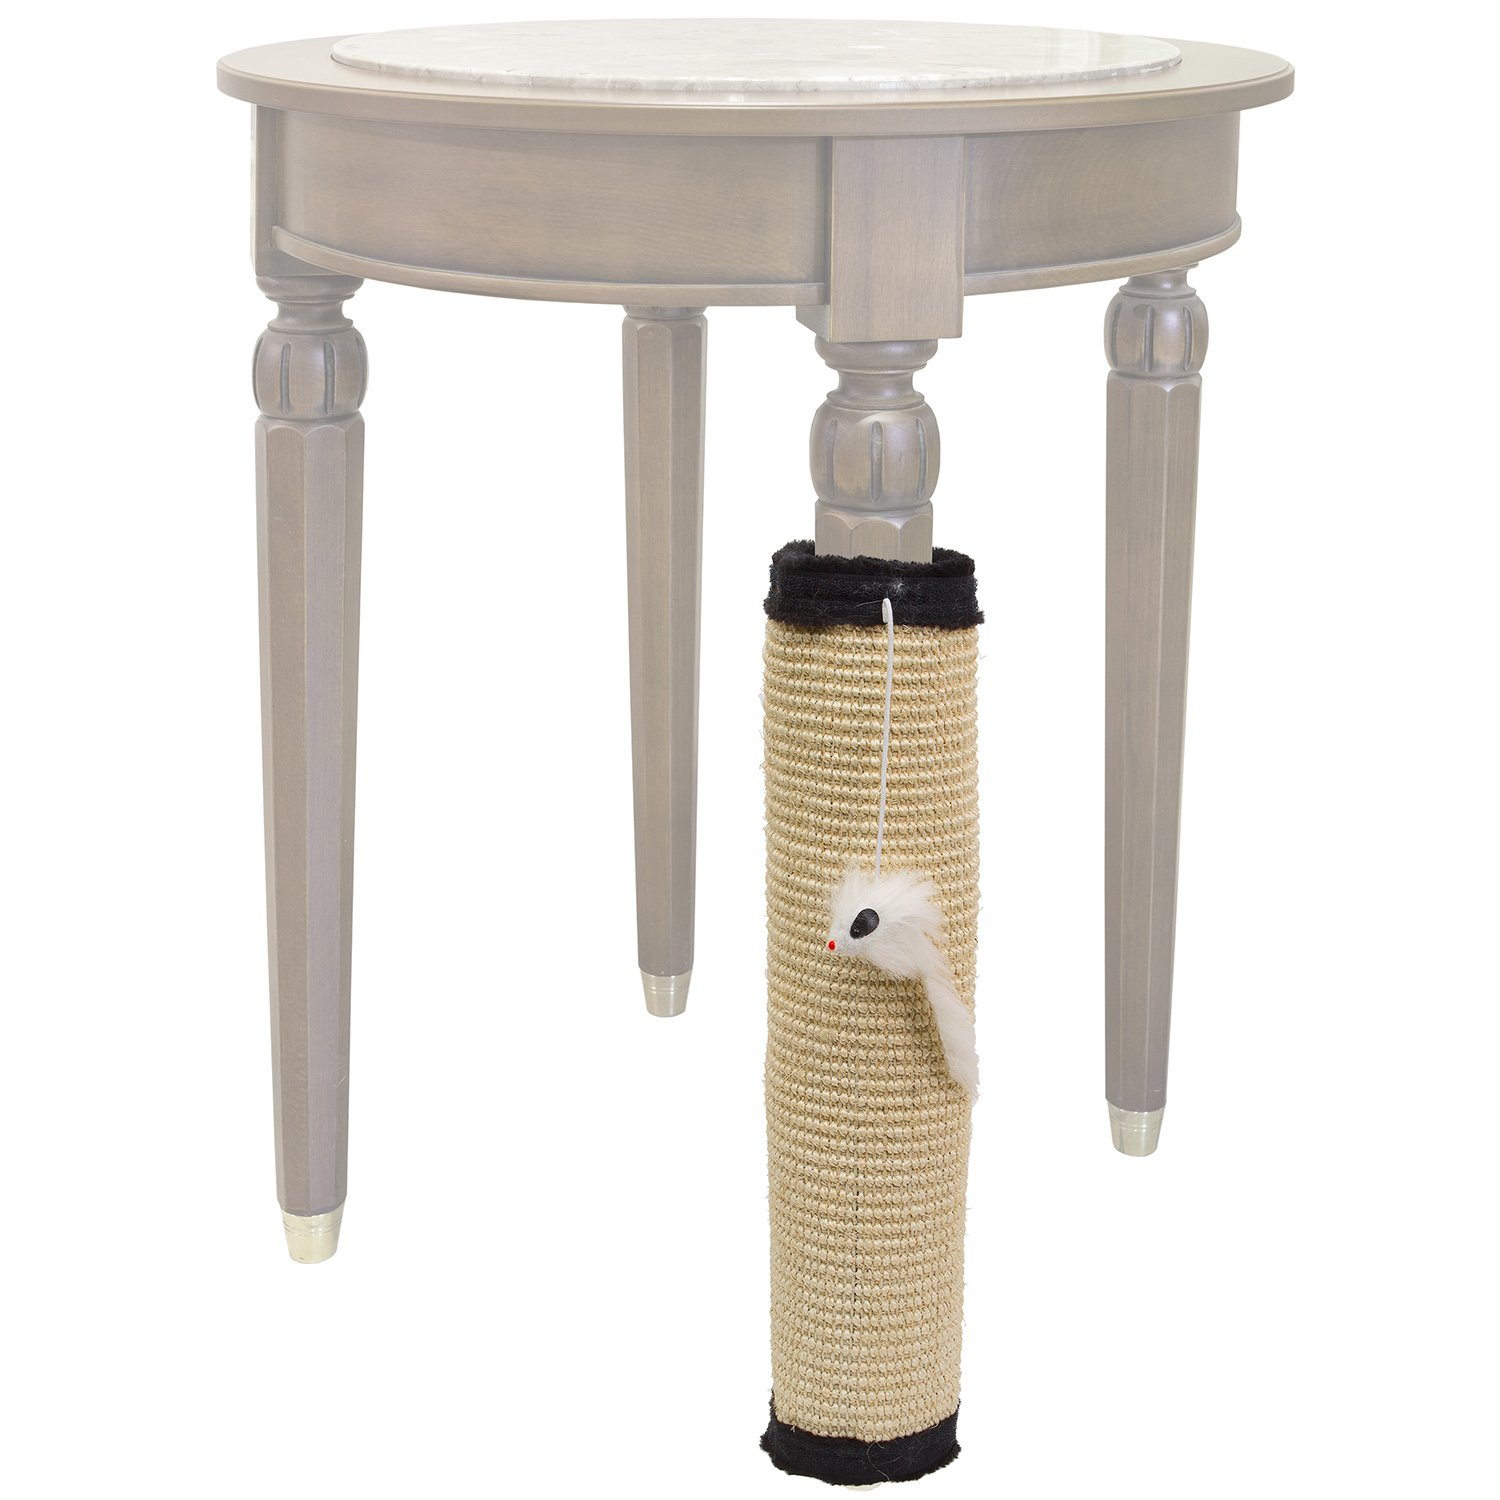 Cat Scratching Furniture Prevention moreover Furniture Cat Scratch Pad besides Furniture Cat Scratch Pad as well  on wrap around leg to table cat scratcher